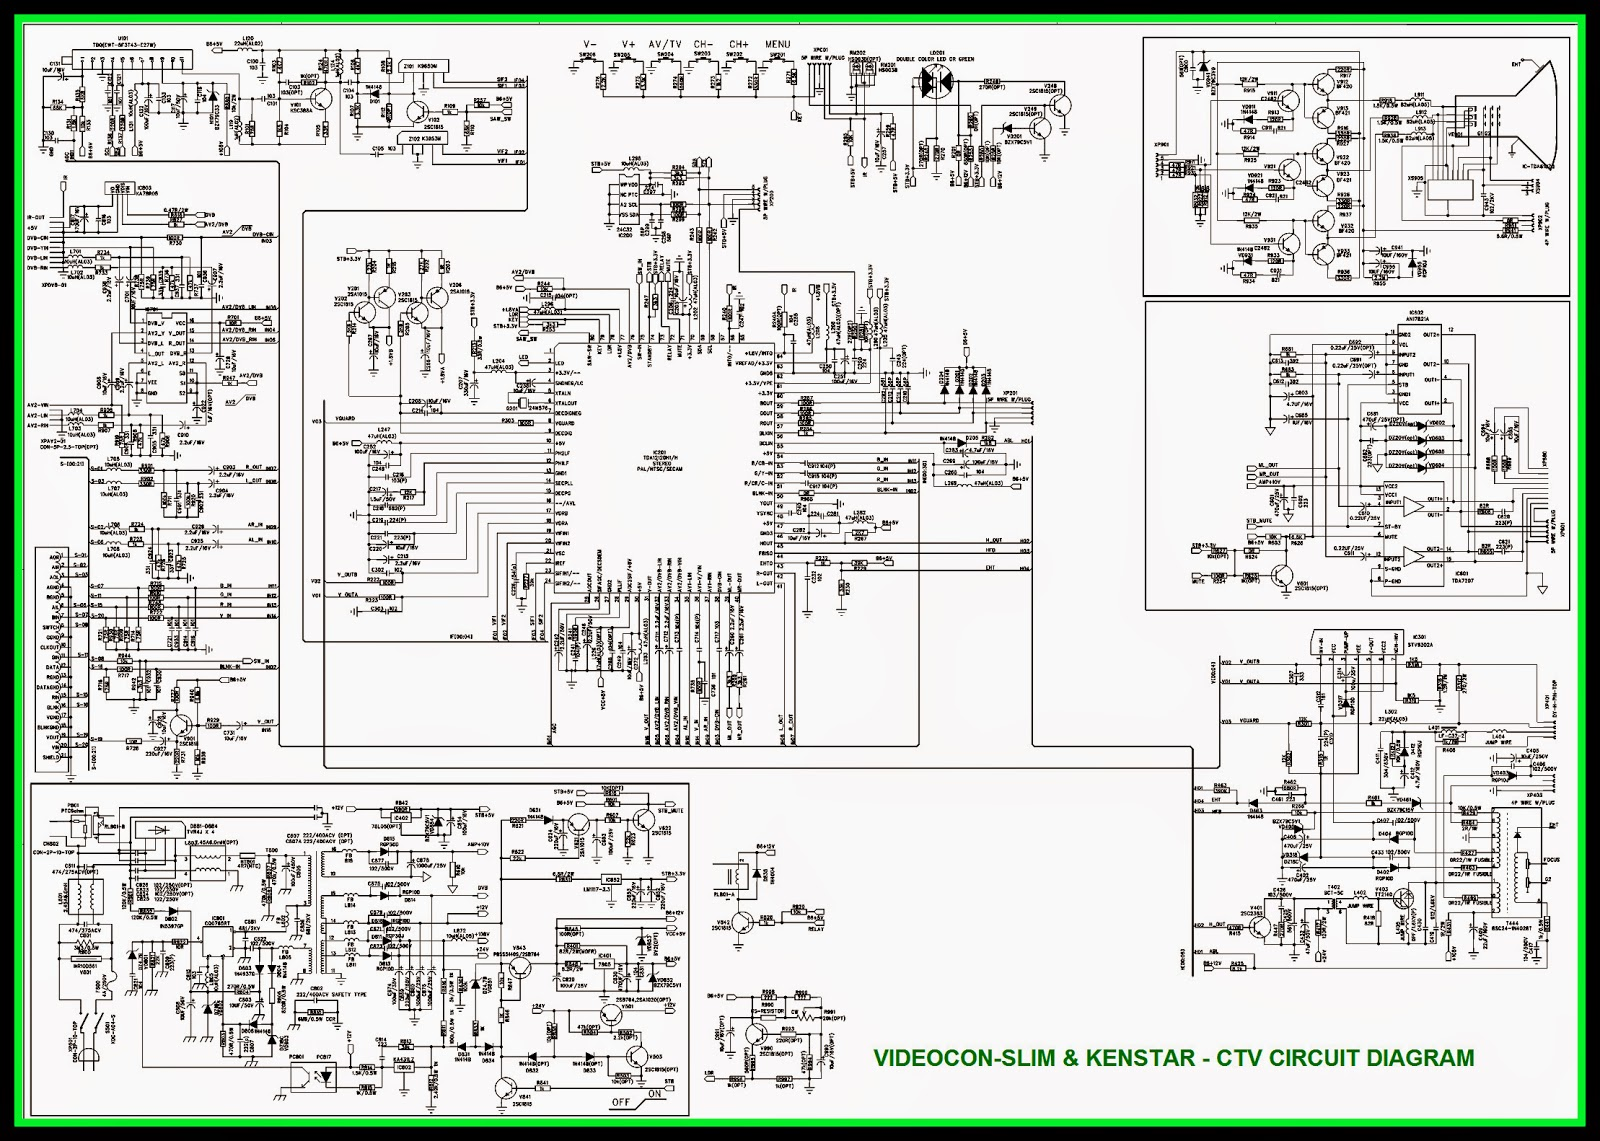 videocon tv circuit diagram model no circuit diagram images. Black Bedroom Furniture Sets. Home Design Ideas